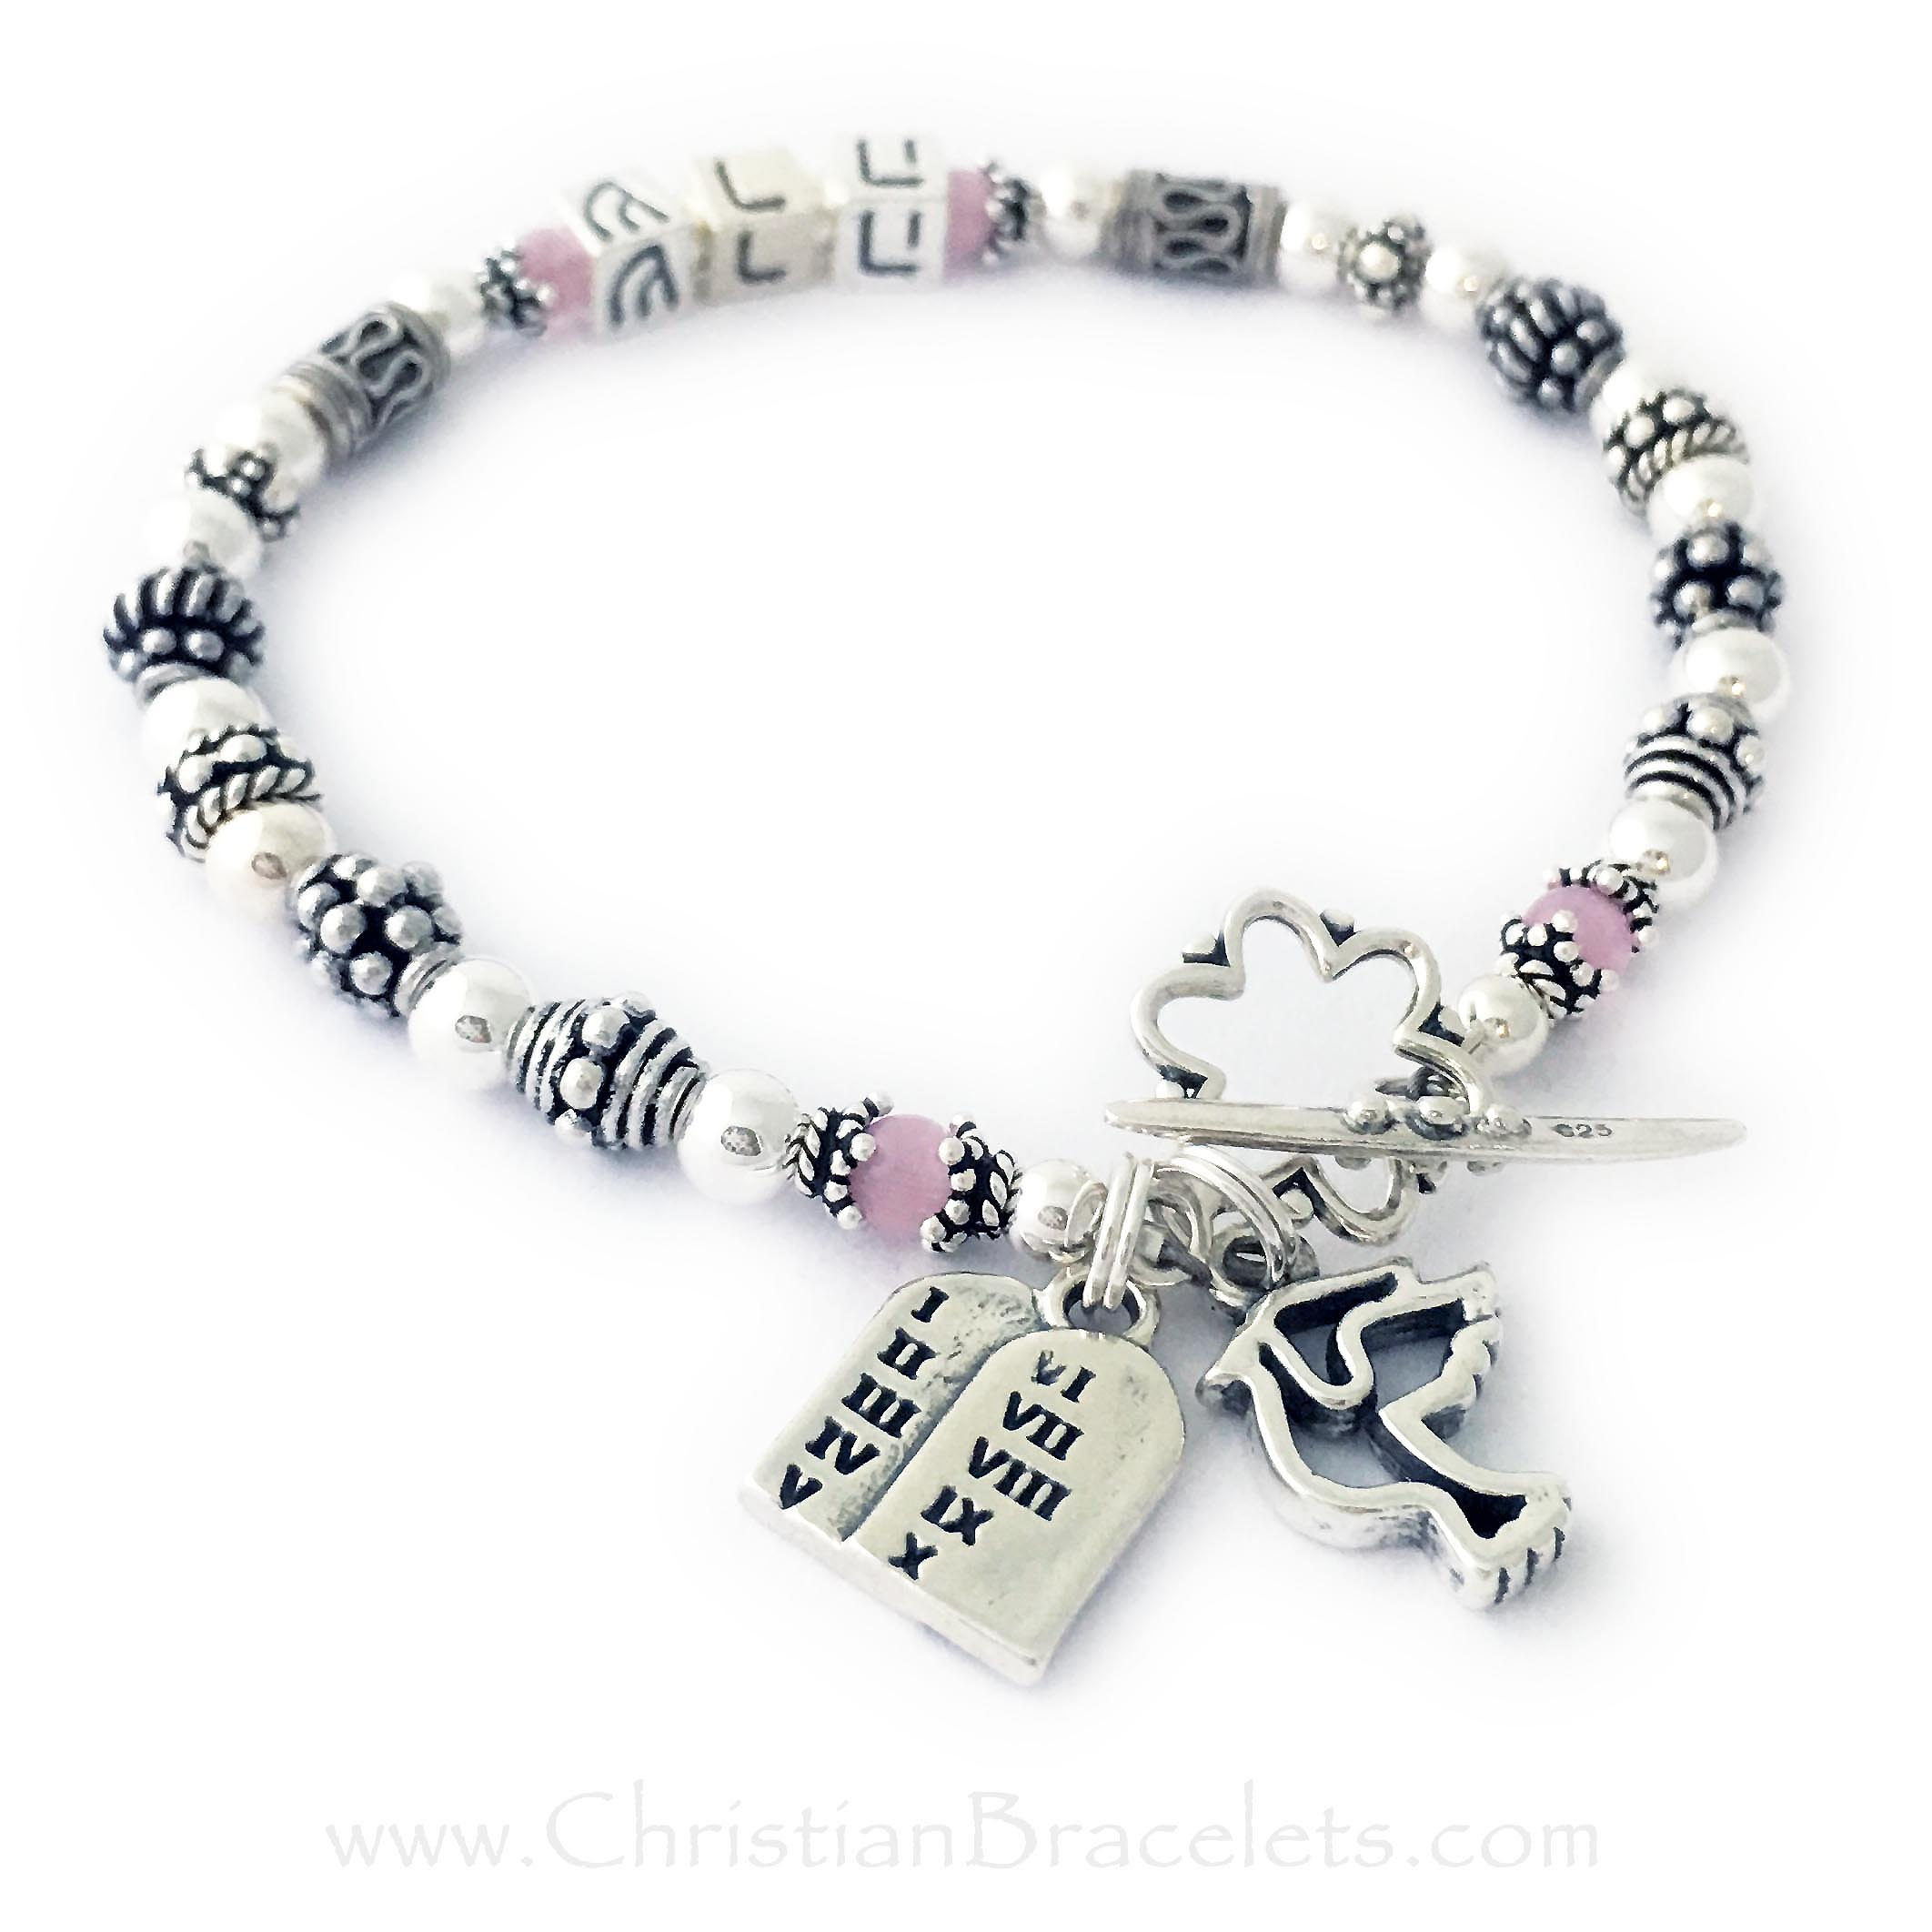 "This is a 10 Commandments Charm Bracelet shown with a Dove charm and Sarah in Hebrew. To order a bracelet like this one choose October for the birth month and enter ""Sarah/Hebrew"" in the Name blank."